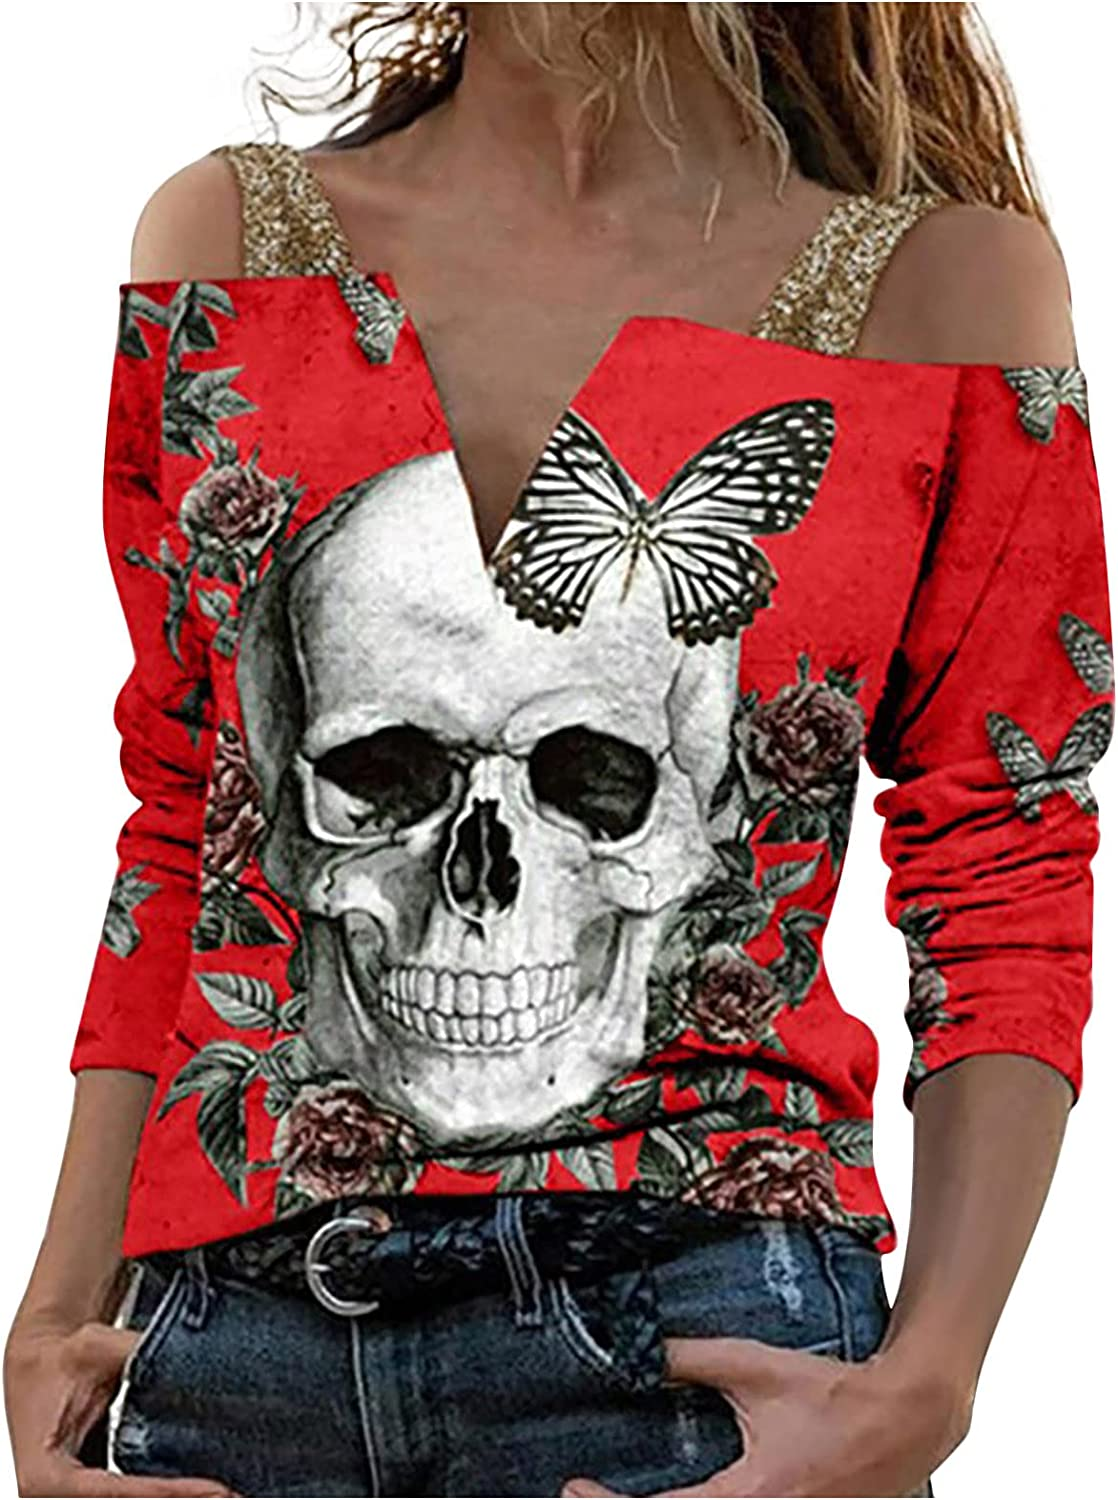 TIMIFIS Off The Shoulder Tops for Women Halloween Long Sleeve Blouses Fashion Skull Print Shirts Casual Sweatshirt